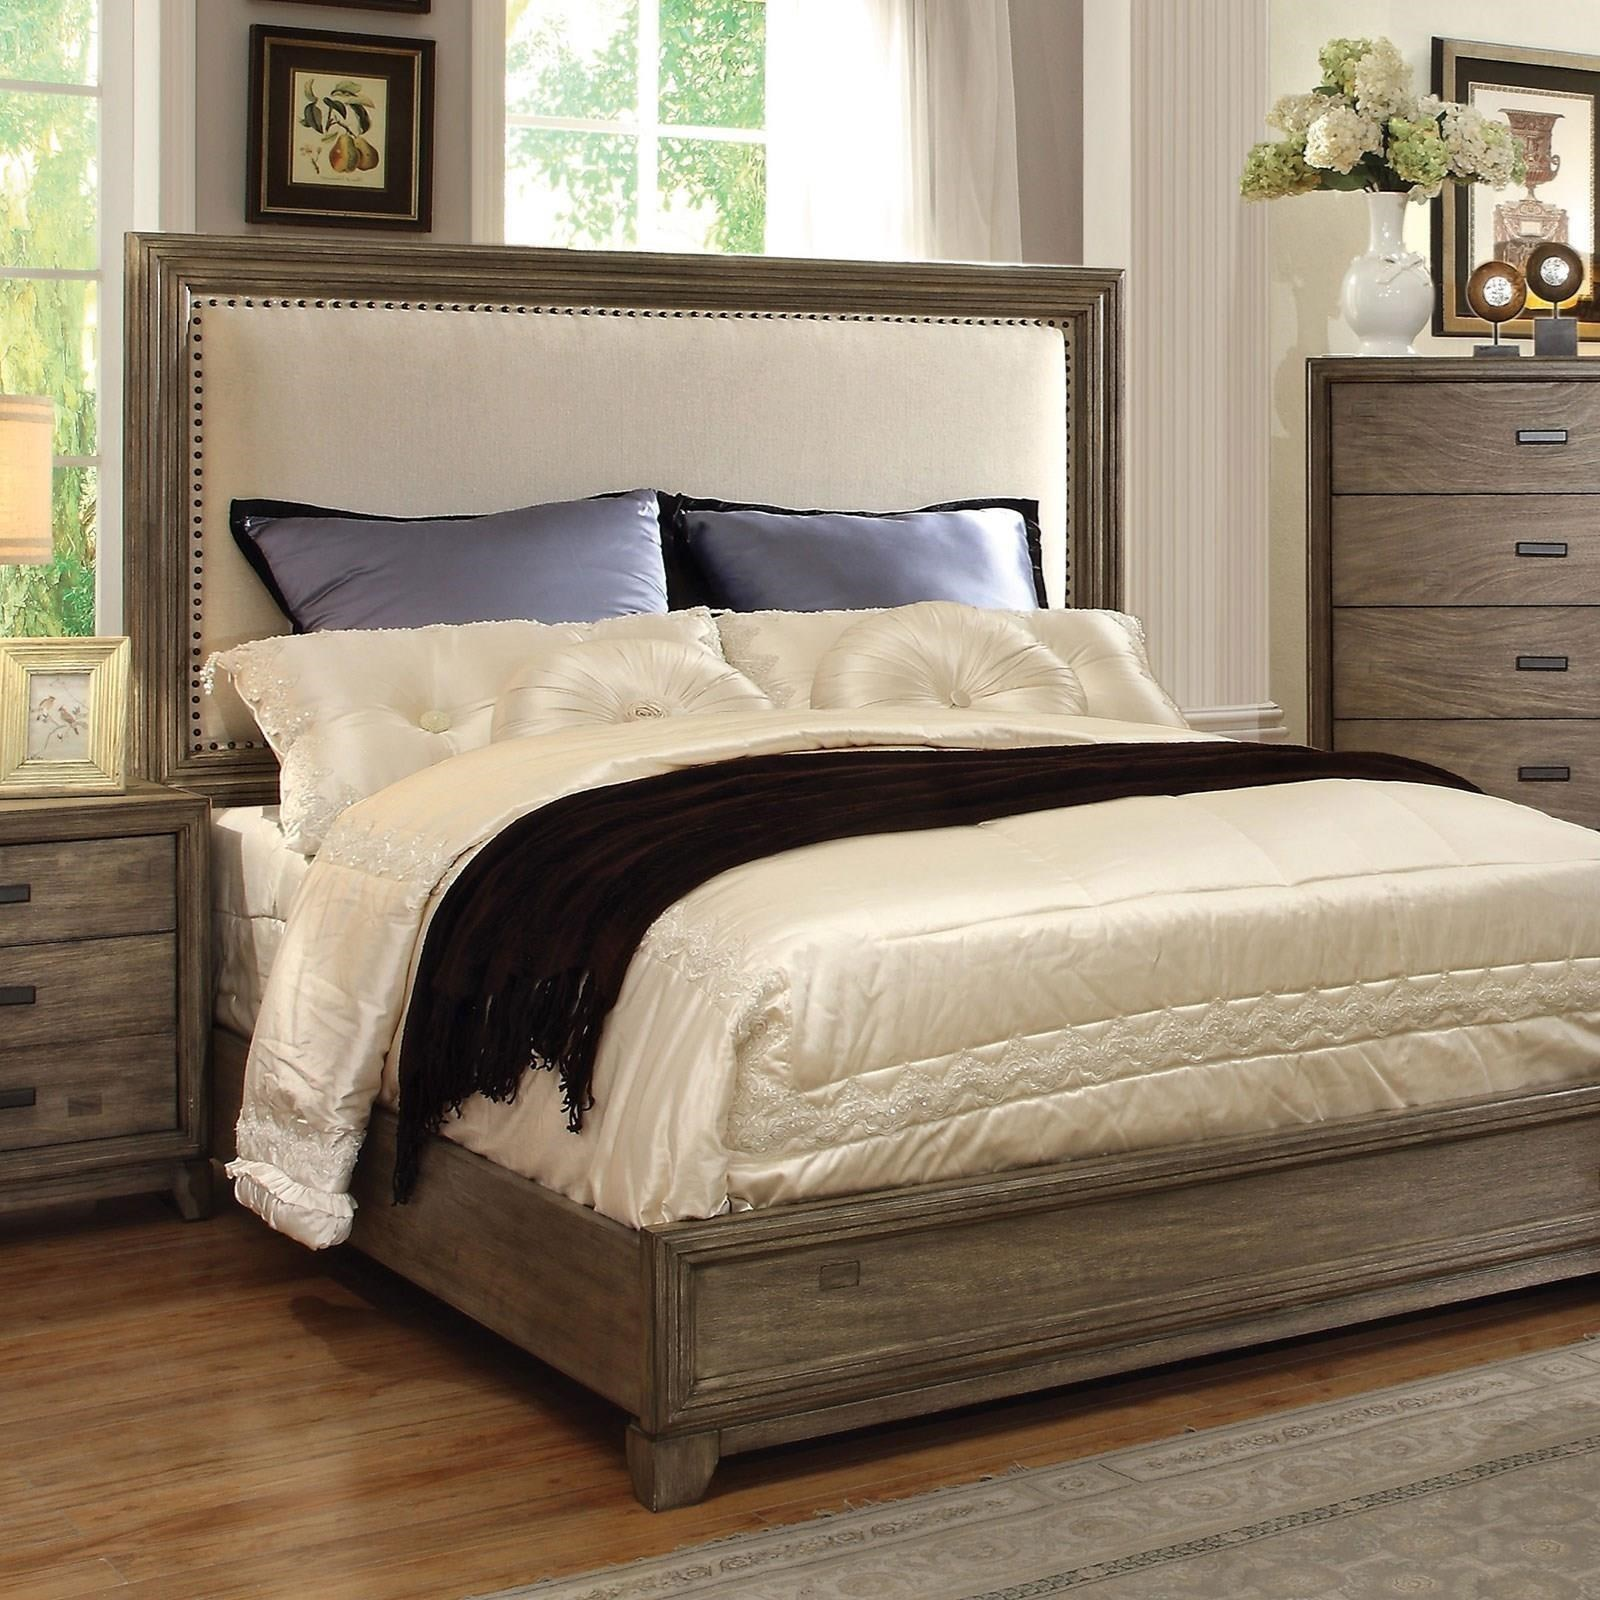 Antler Queen Bed by Furniture of America - FOA at Del Sol Furniture